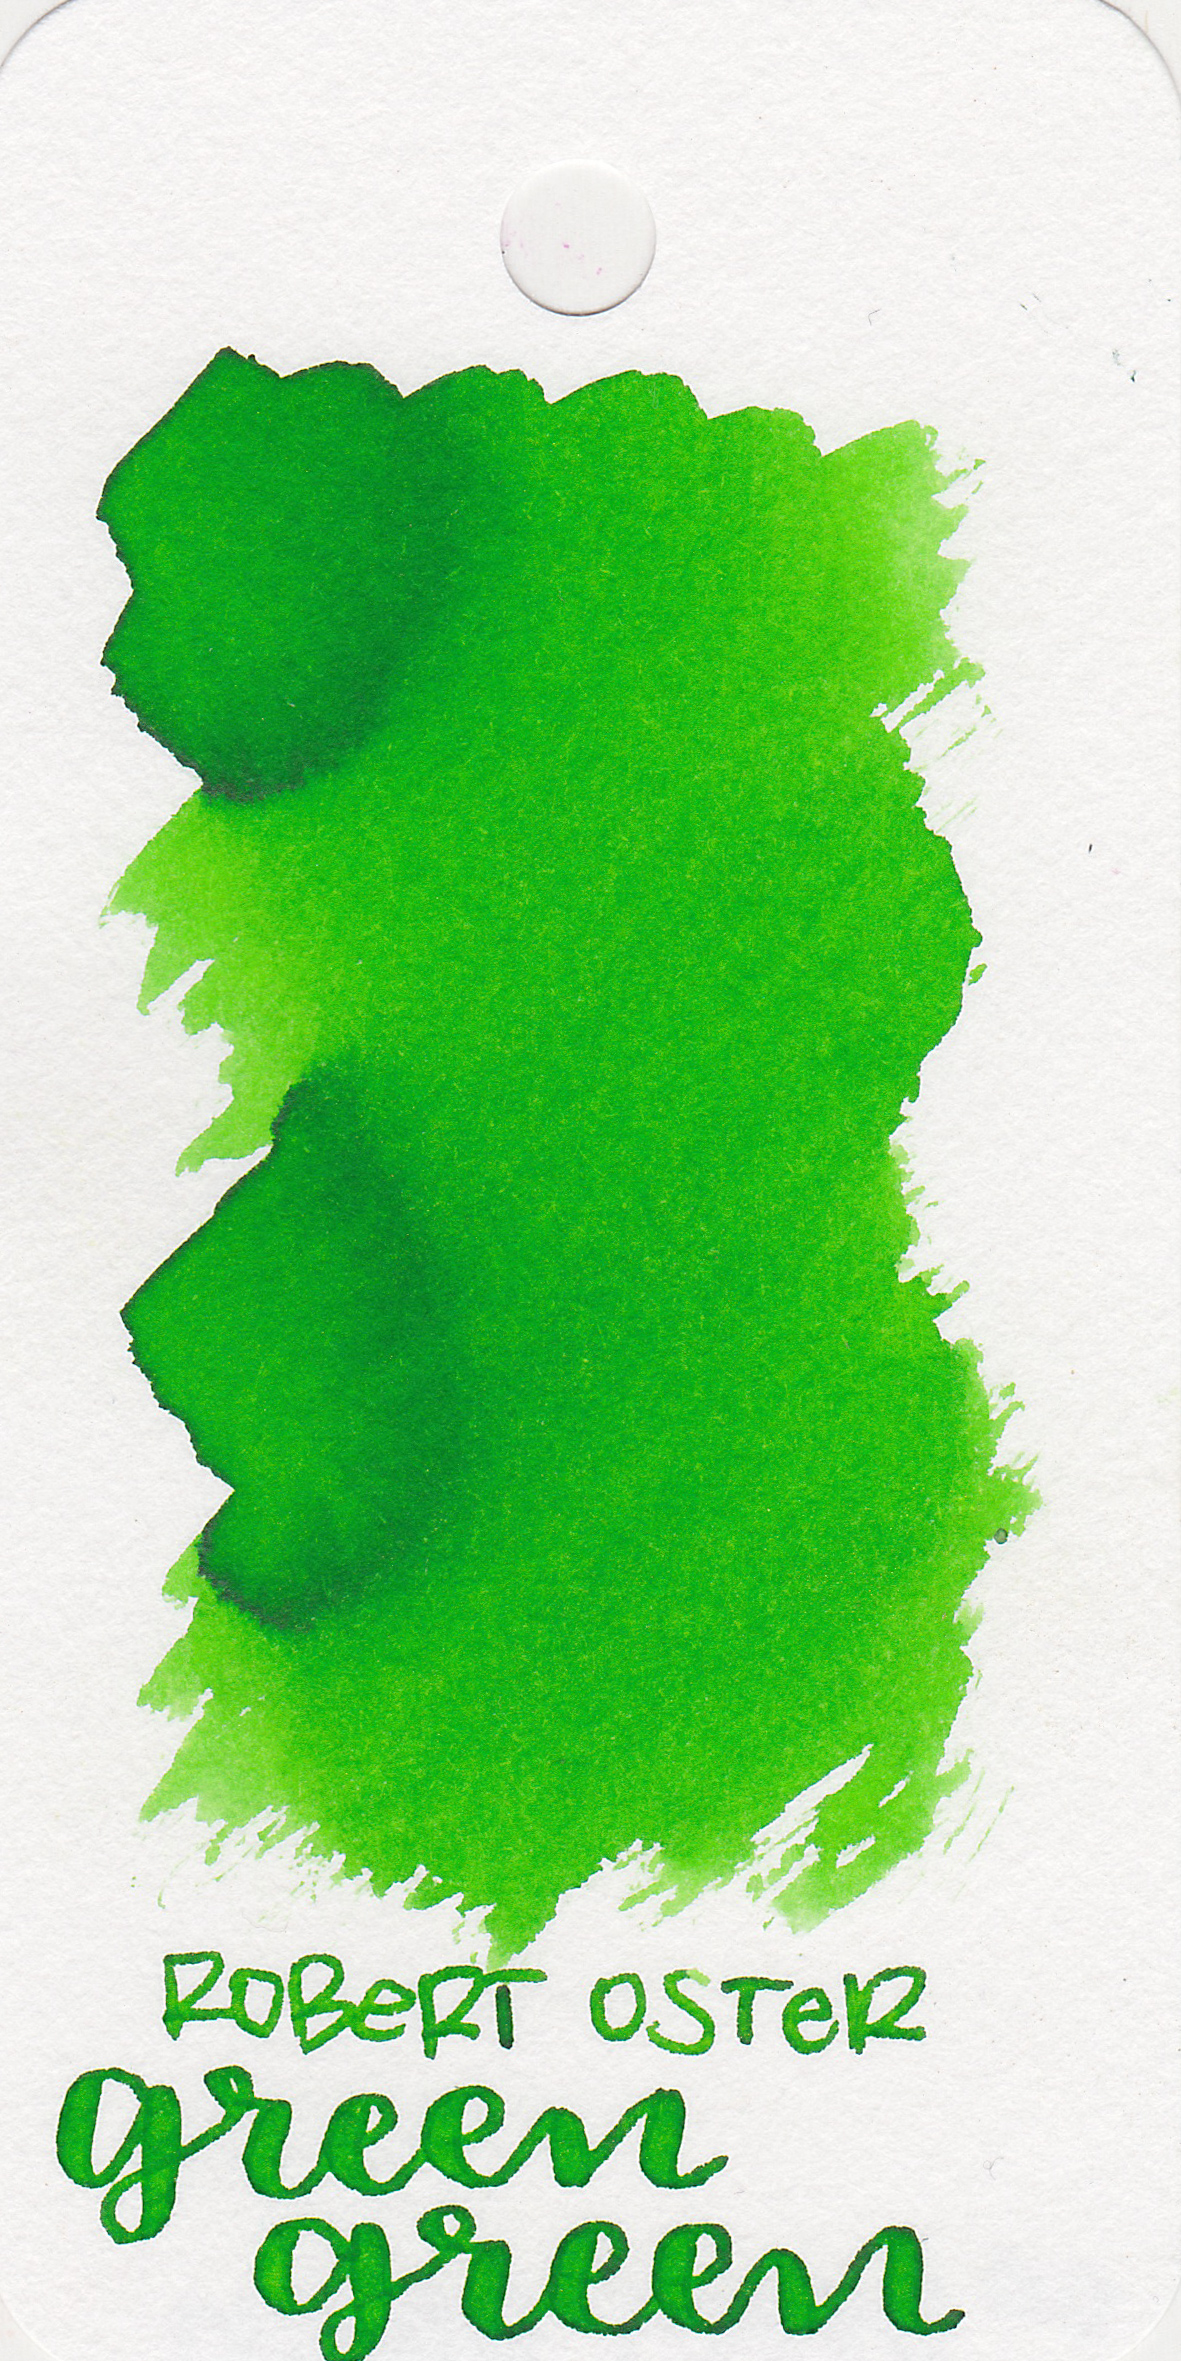 The color: - Green green is a medium bright green.